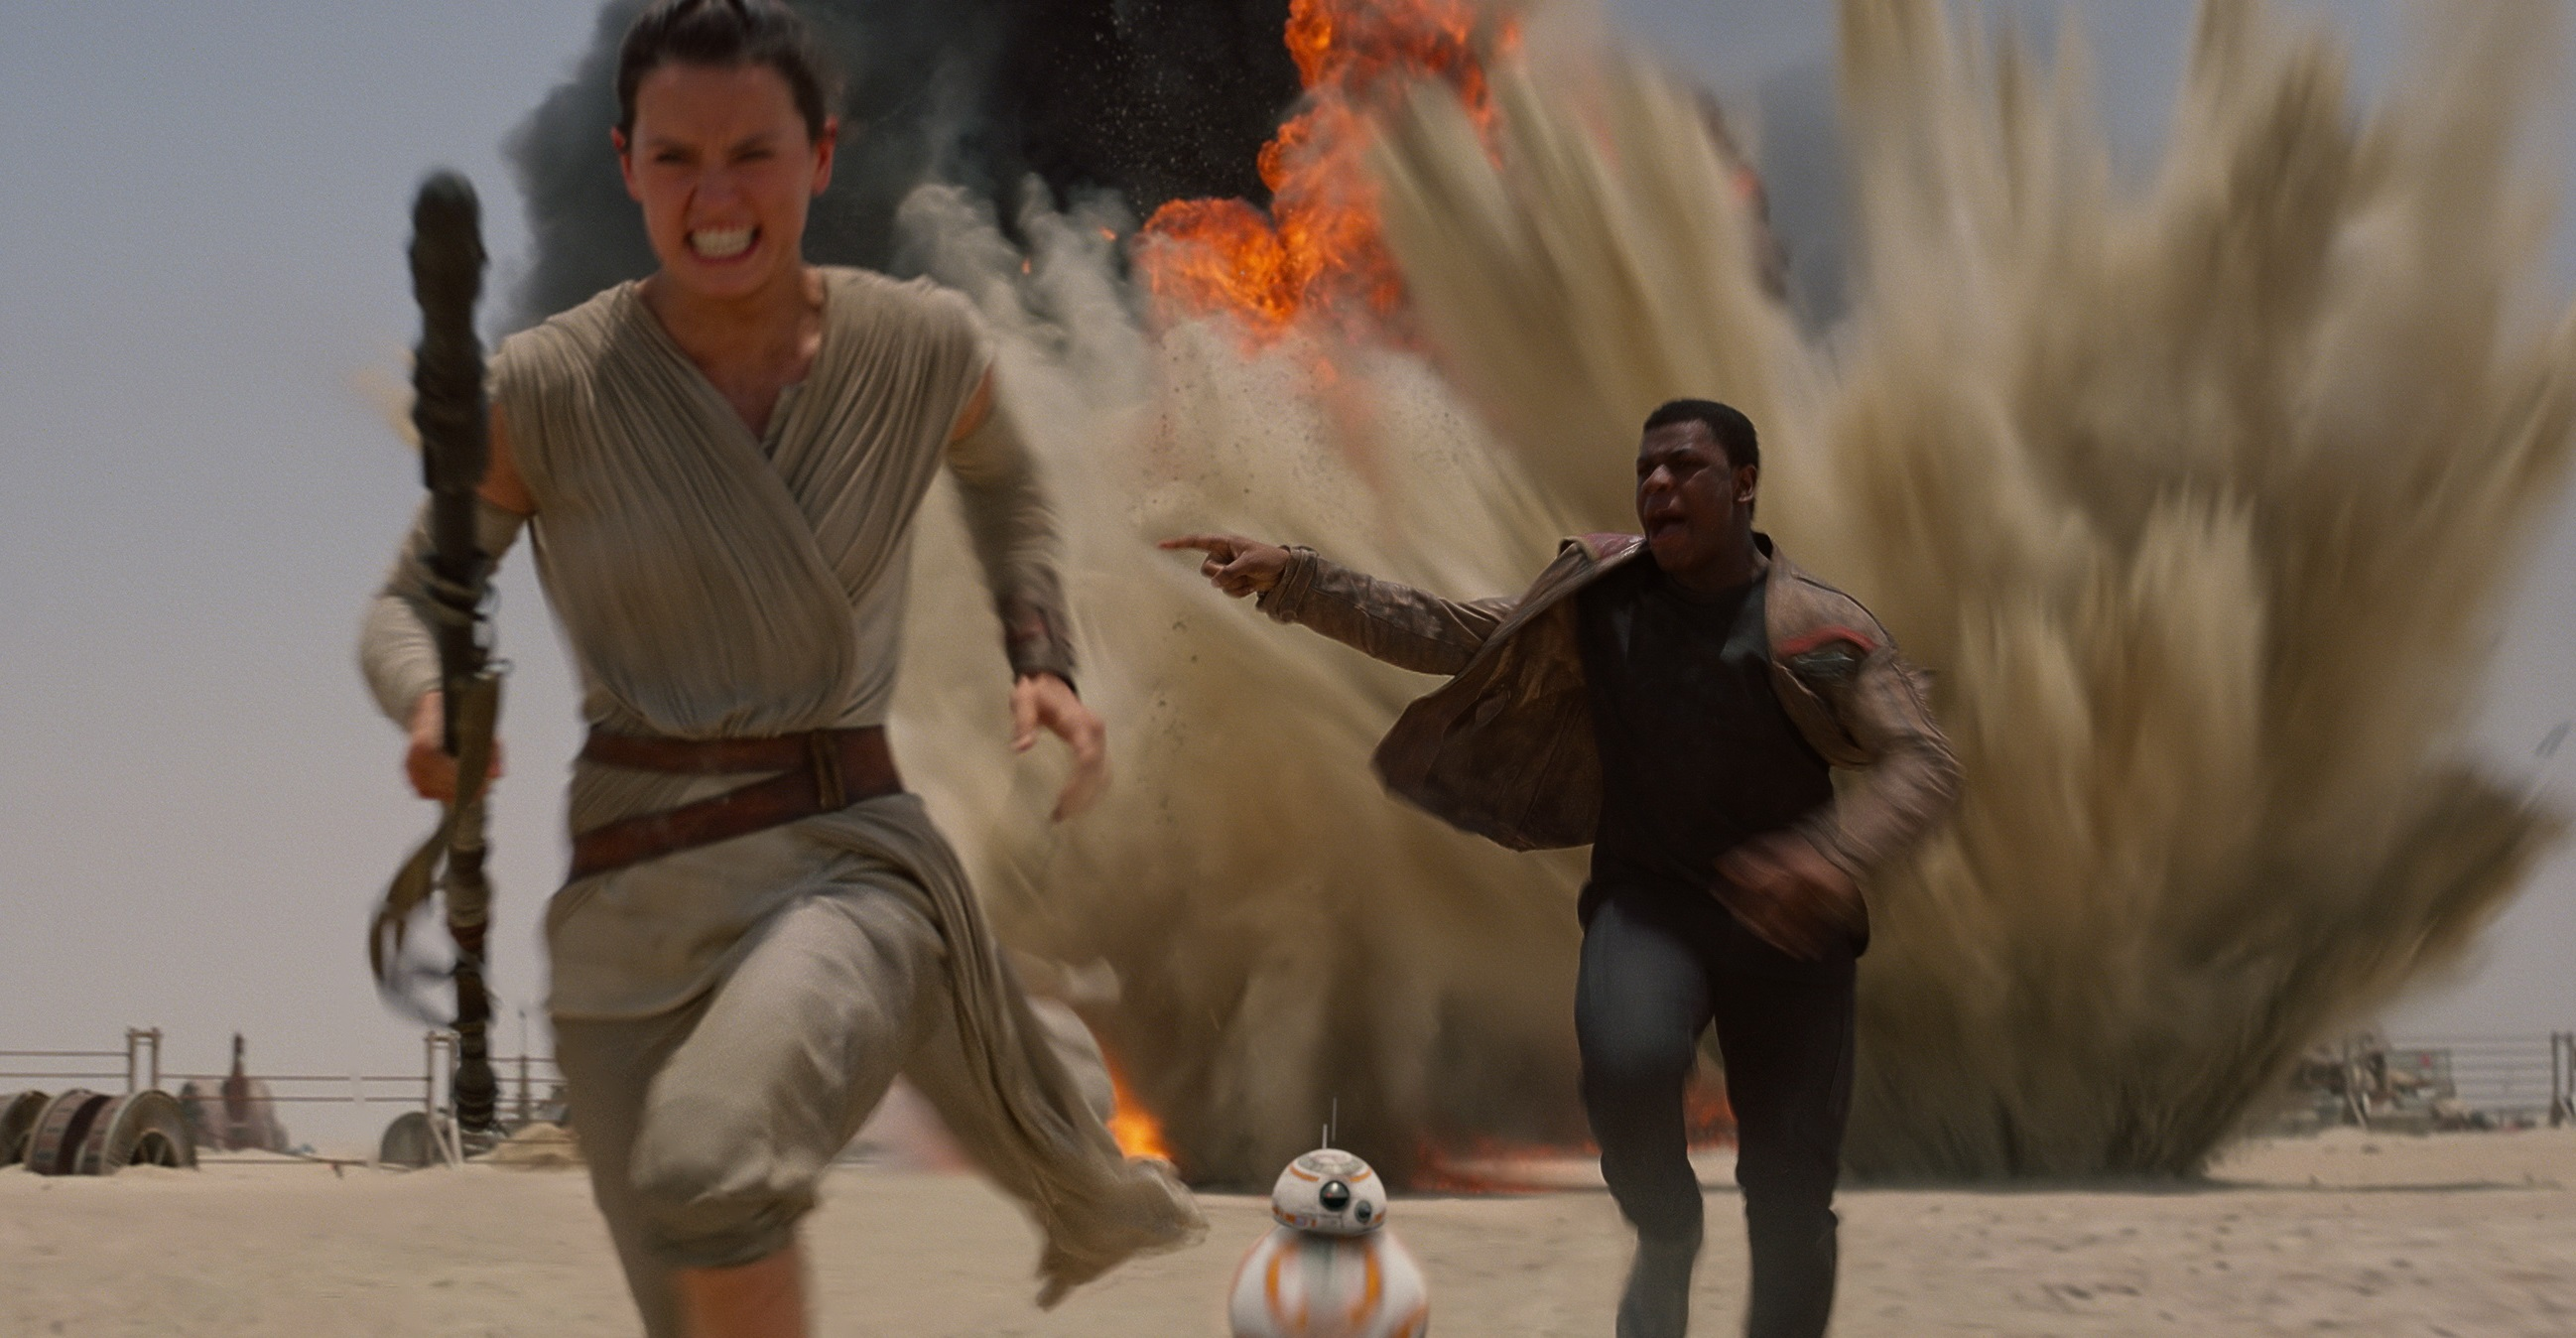 10 Things to Note in Trailer for Star Wars: The Force Awakens